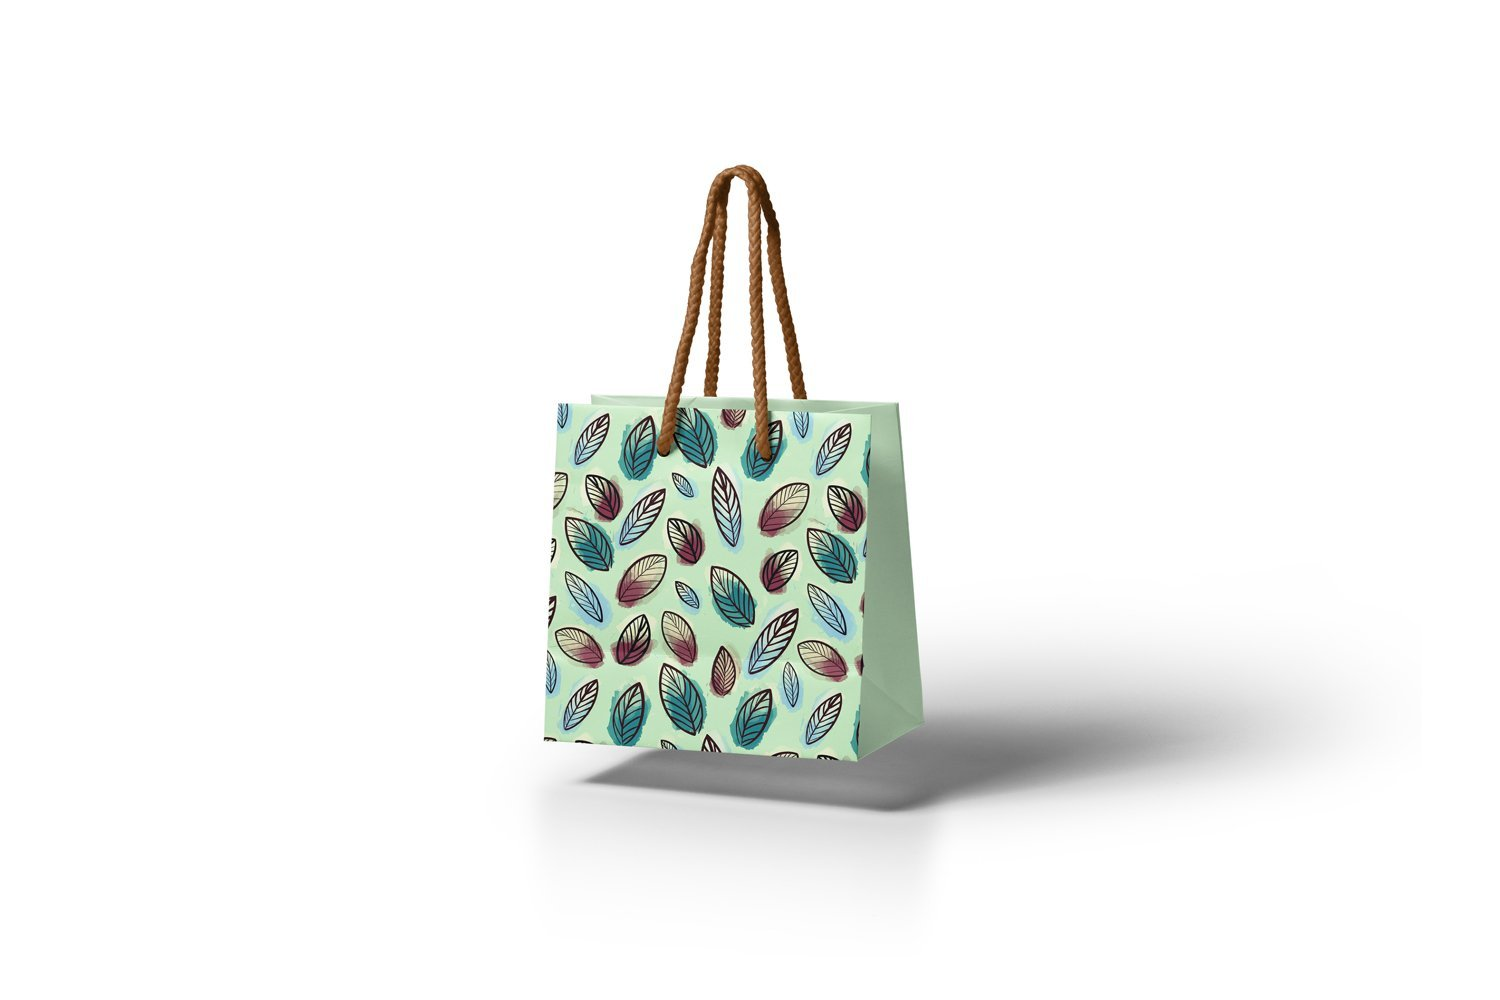 Green bag with leaves.